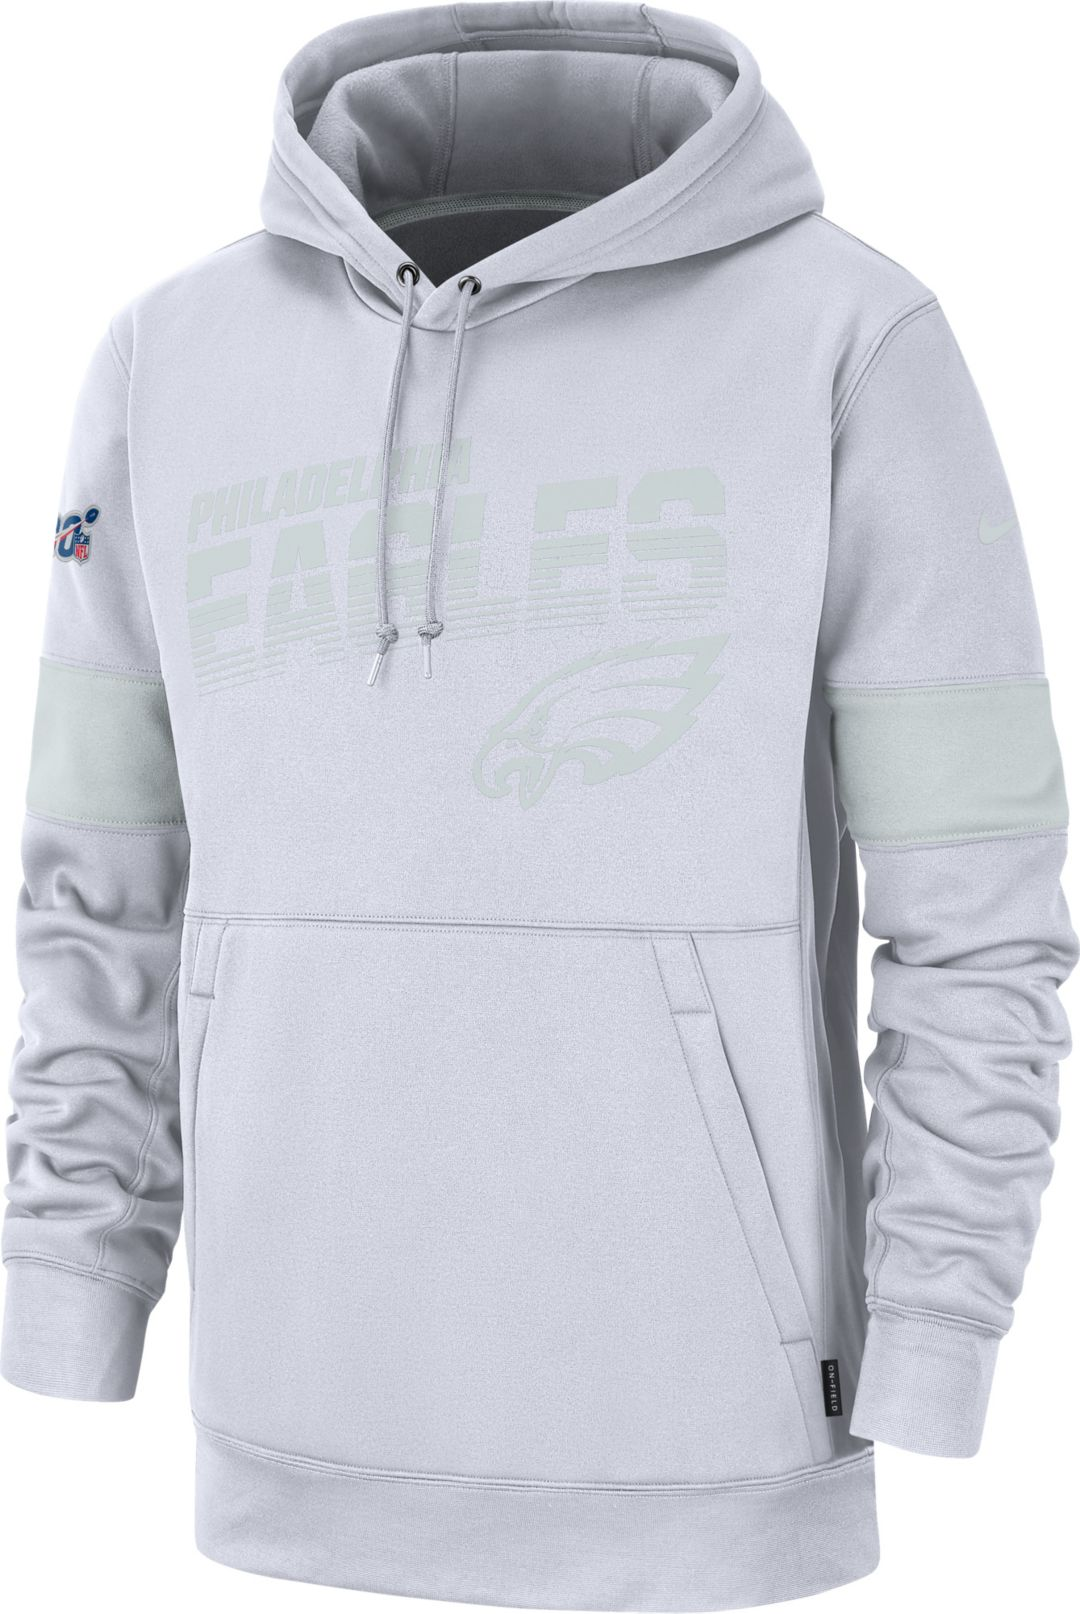 first rate 807d3 d5ddb Nike Men's Philadelphia Eagles 100th Sideline Therma-FIT Pullover White  Hoodie